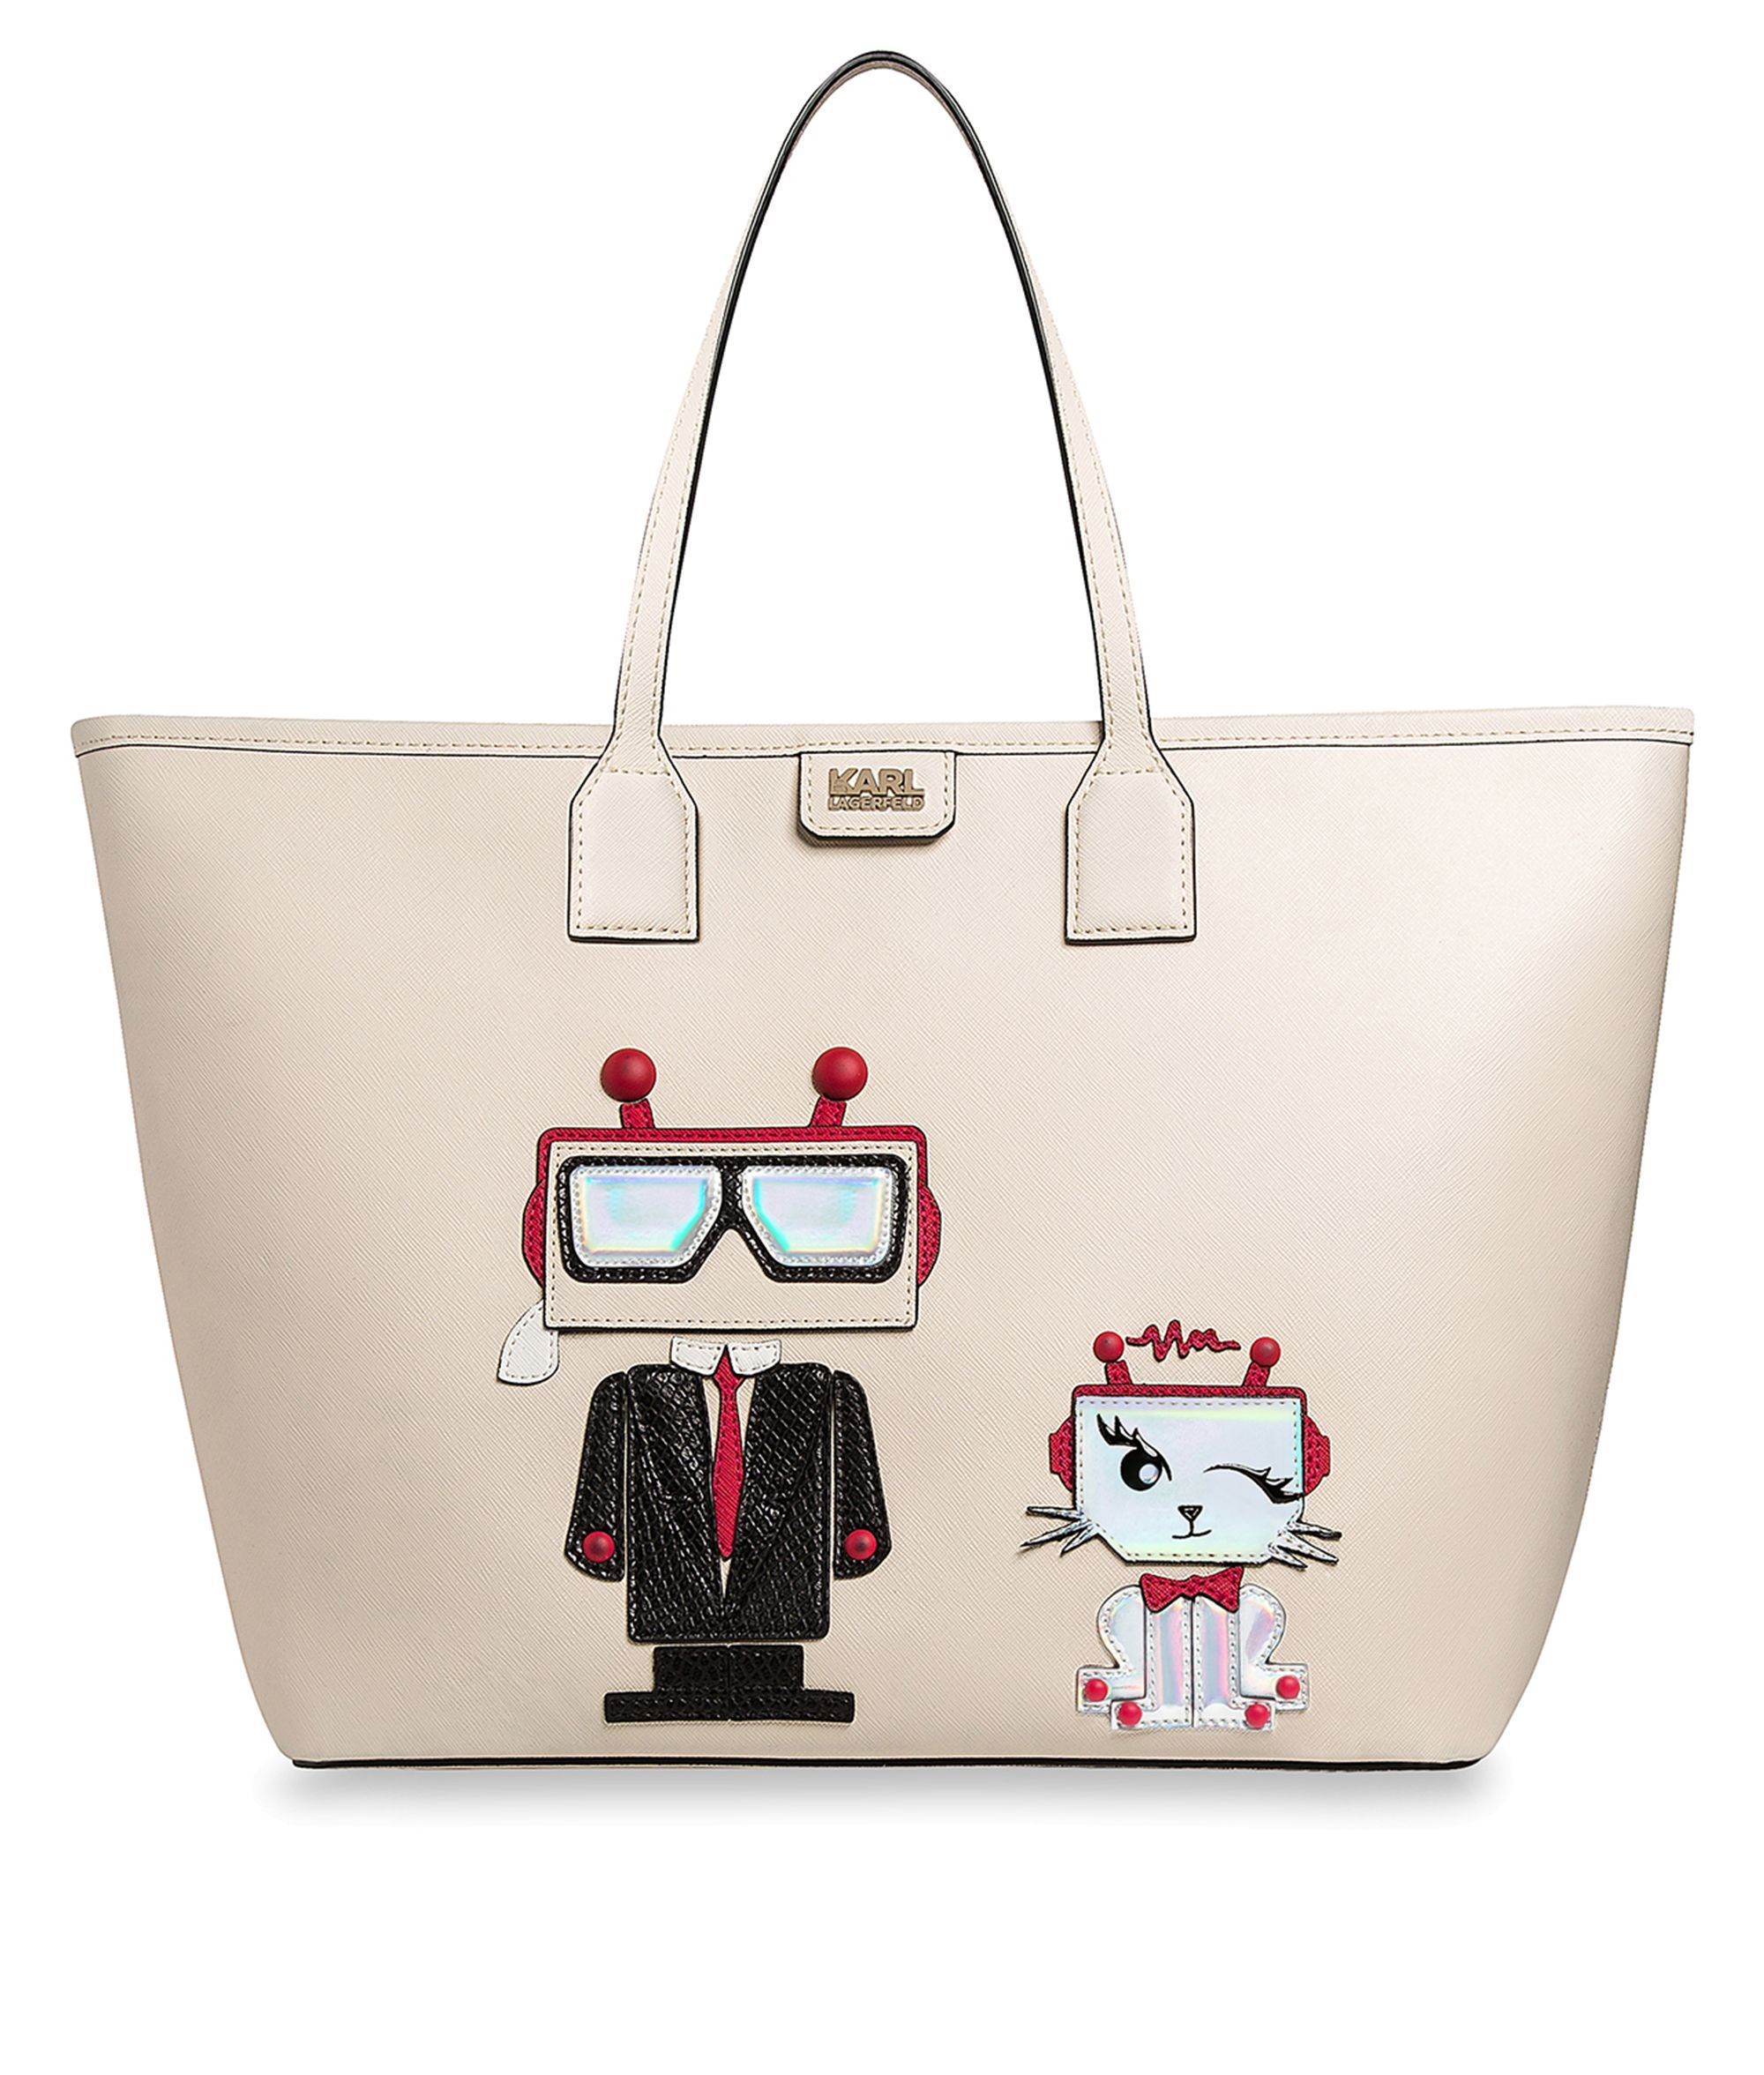 Are you looking for KARL LAGERFELD women's K/ROBOT SHOPPER KARL & CHOUPETTE? Discover all the details on KARL.COM. Fast delivery and secure payment.